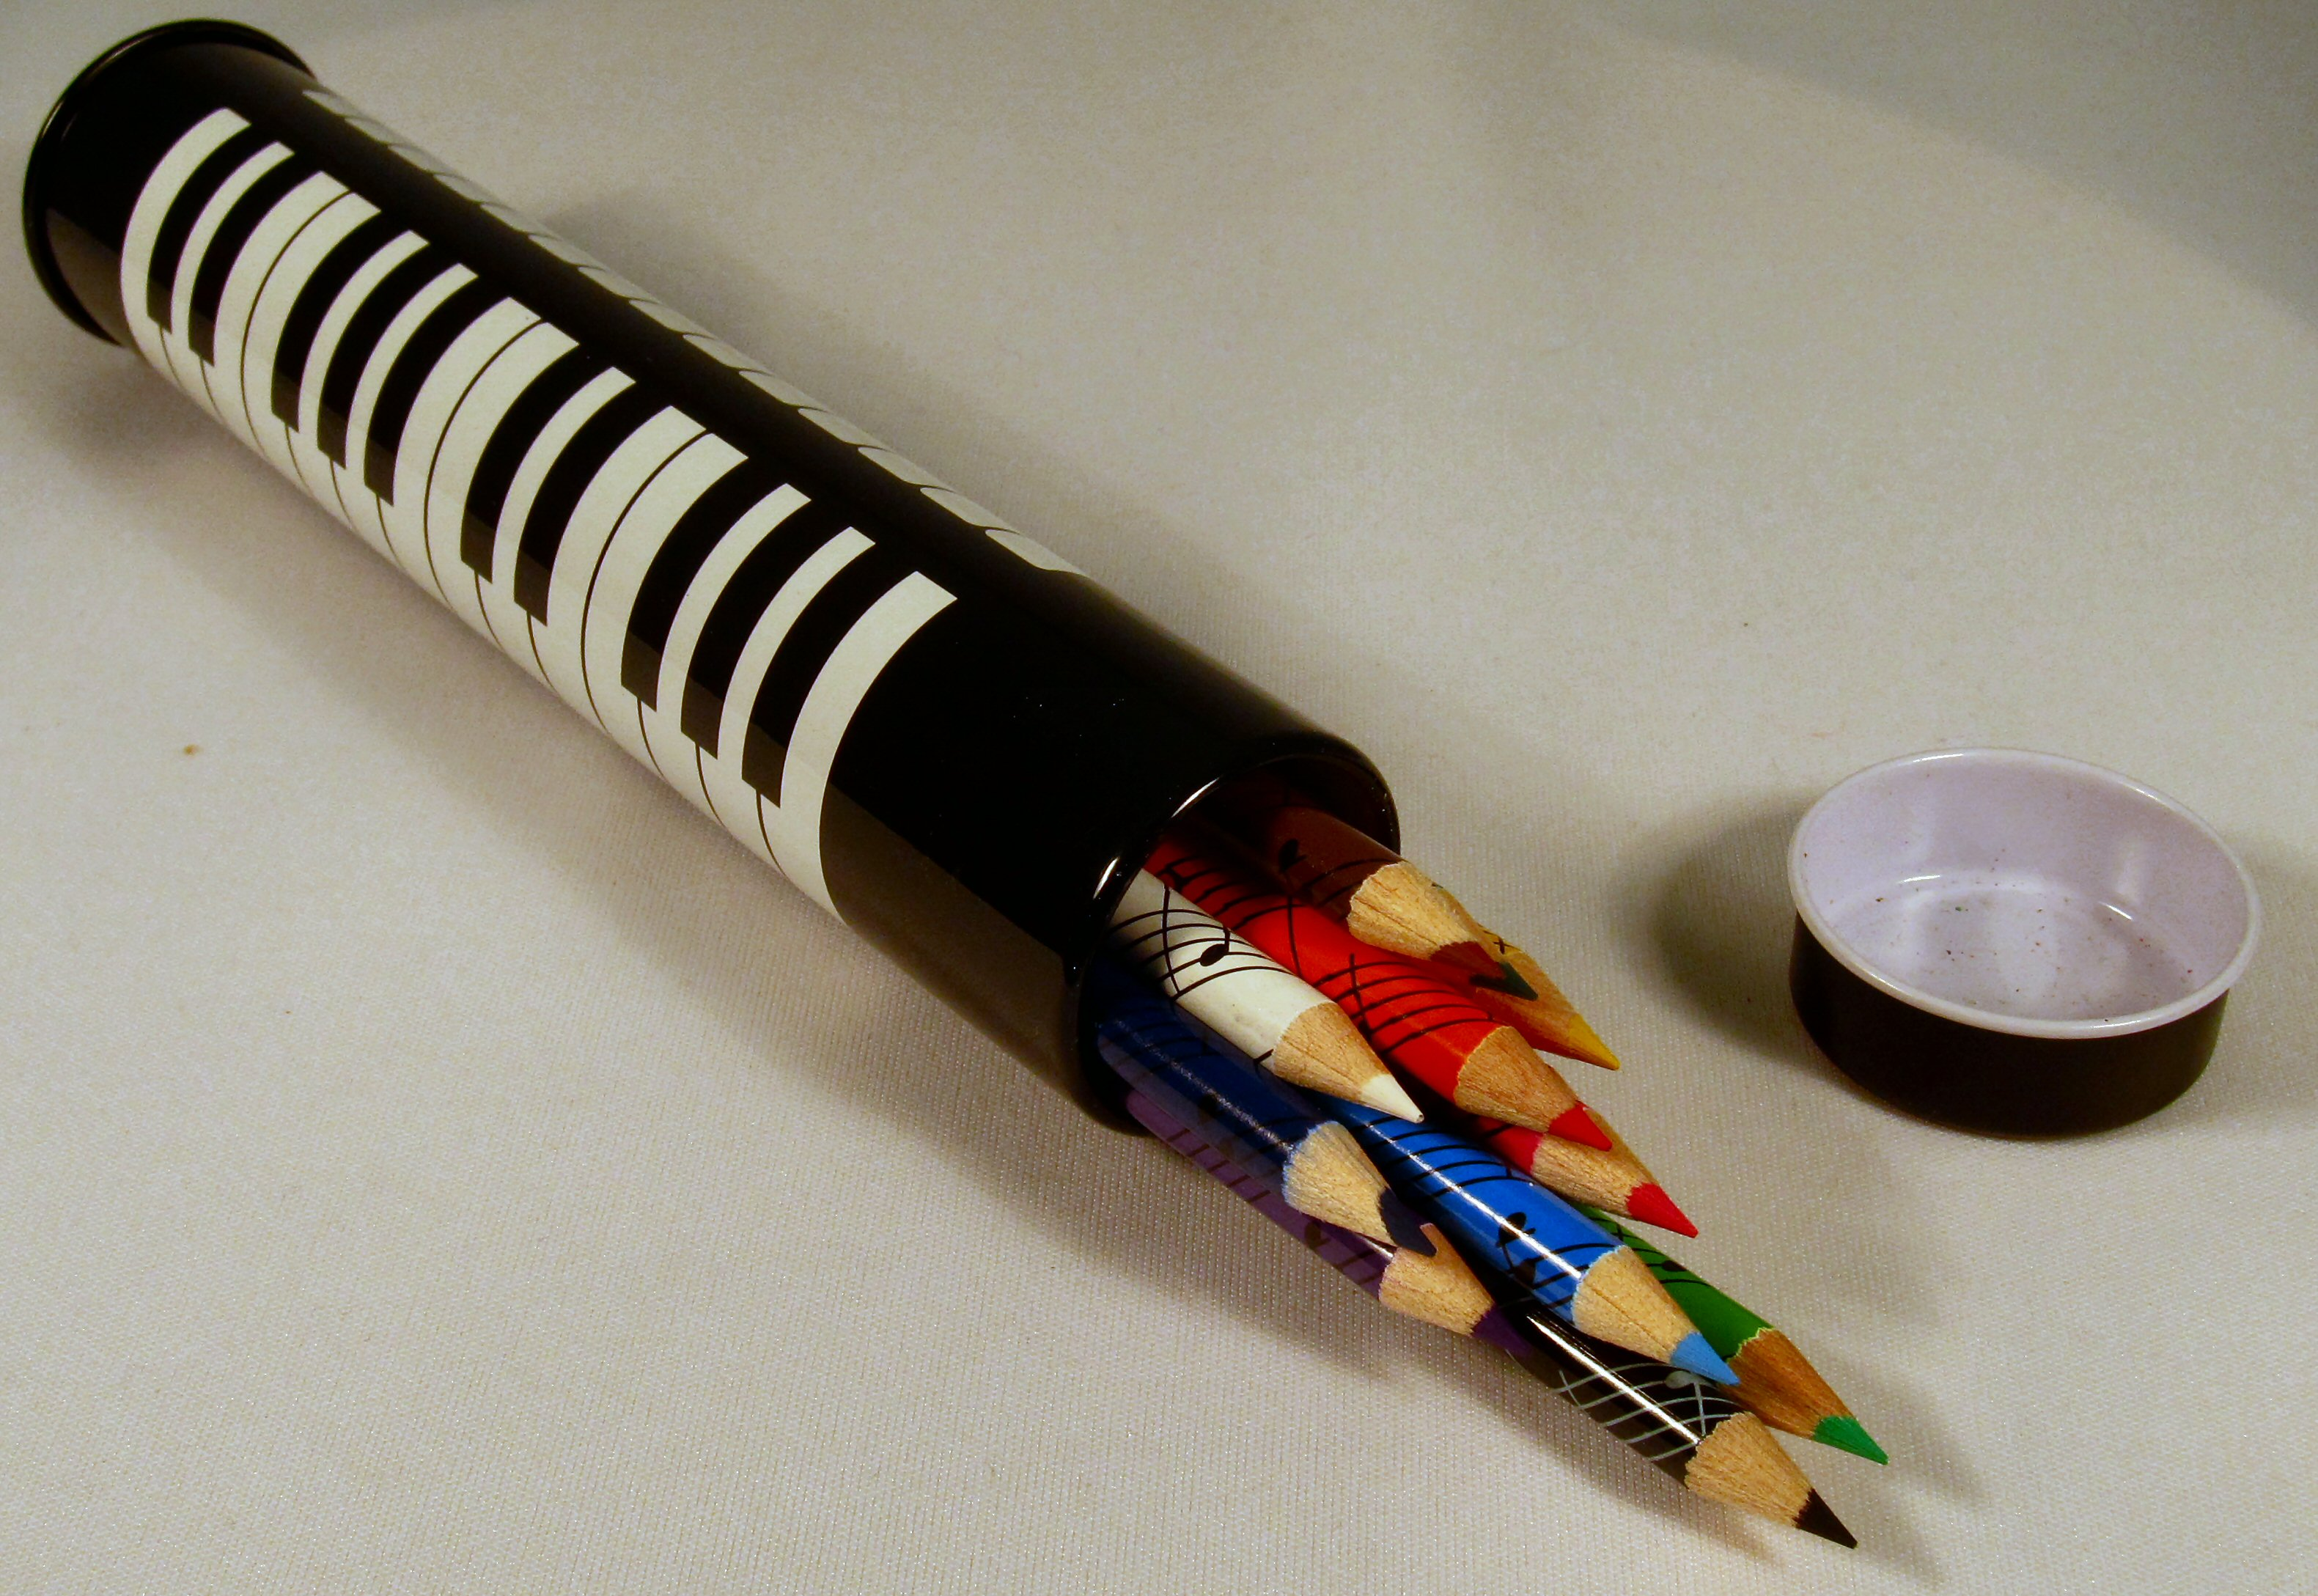 12 Colour Pencils In Keyboard Tin: Stationery